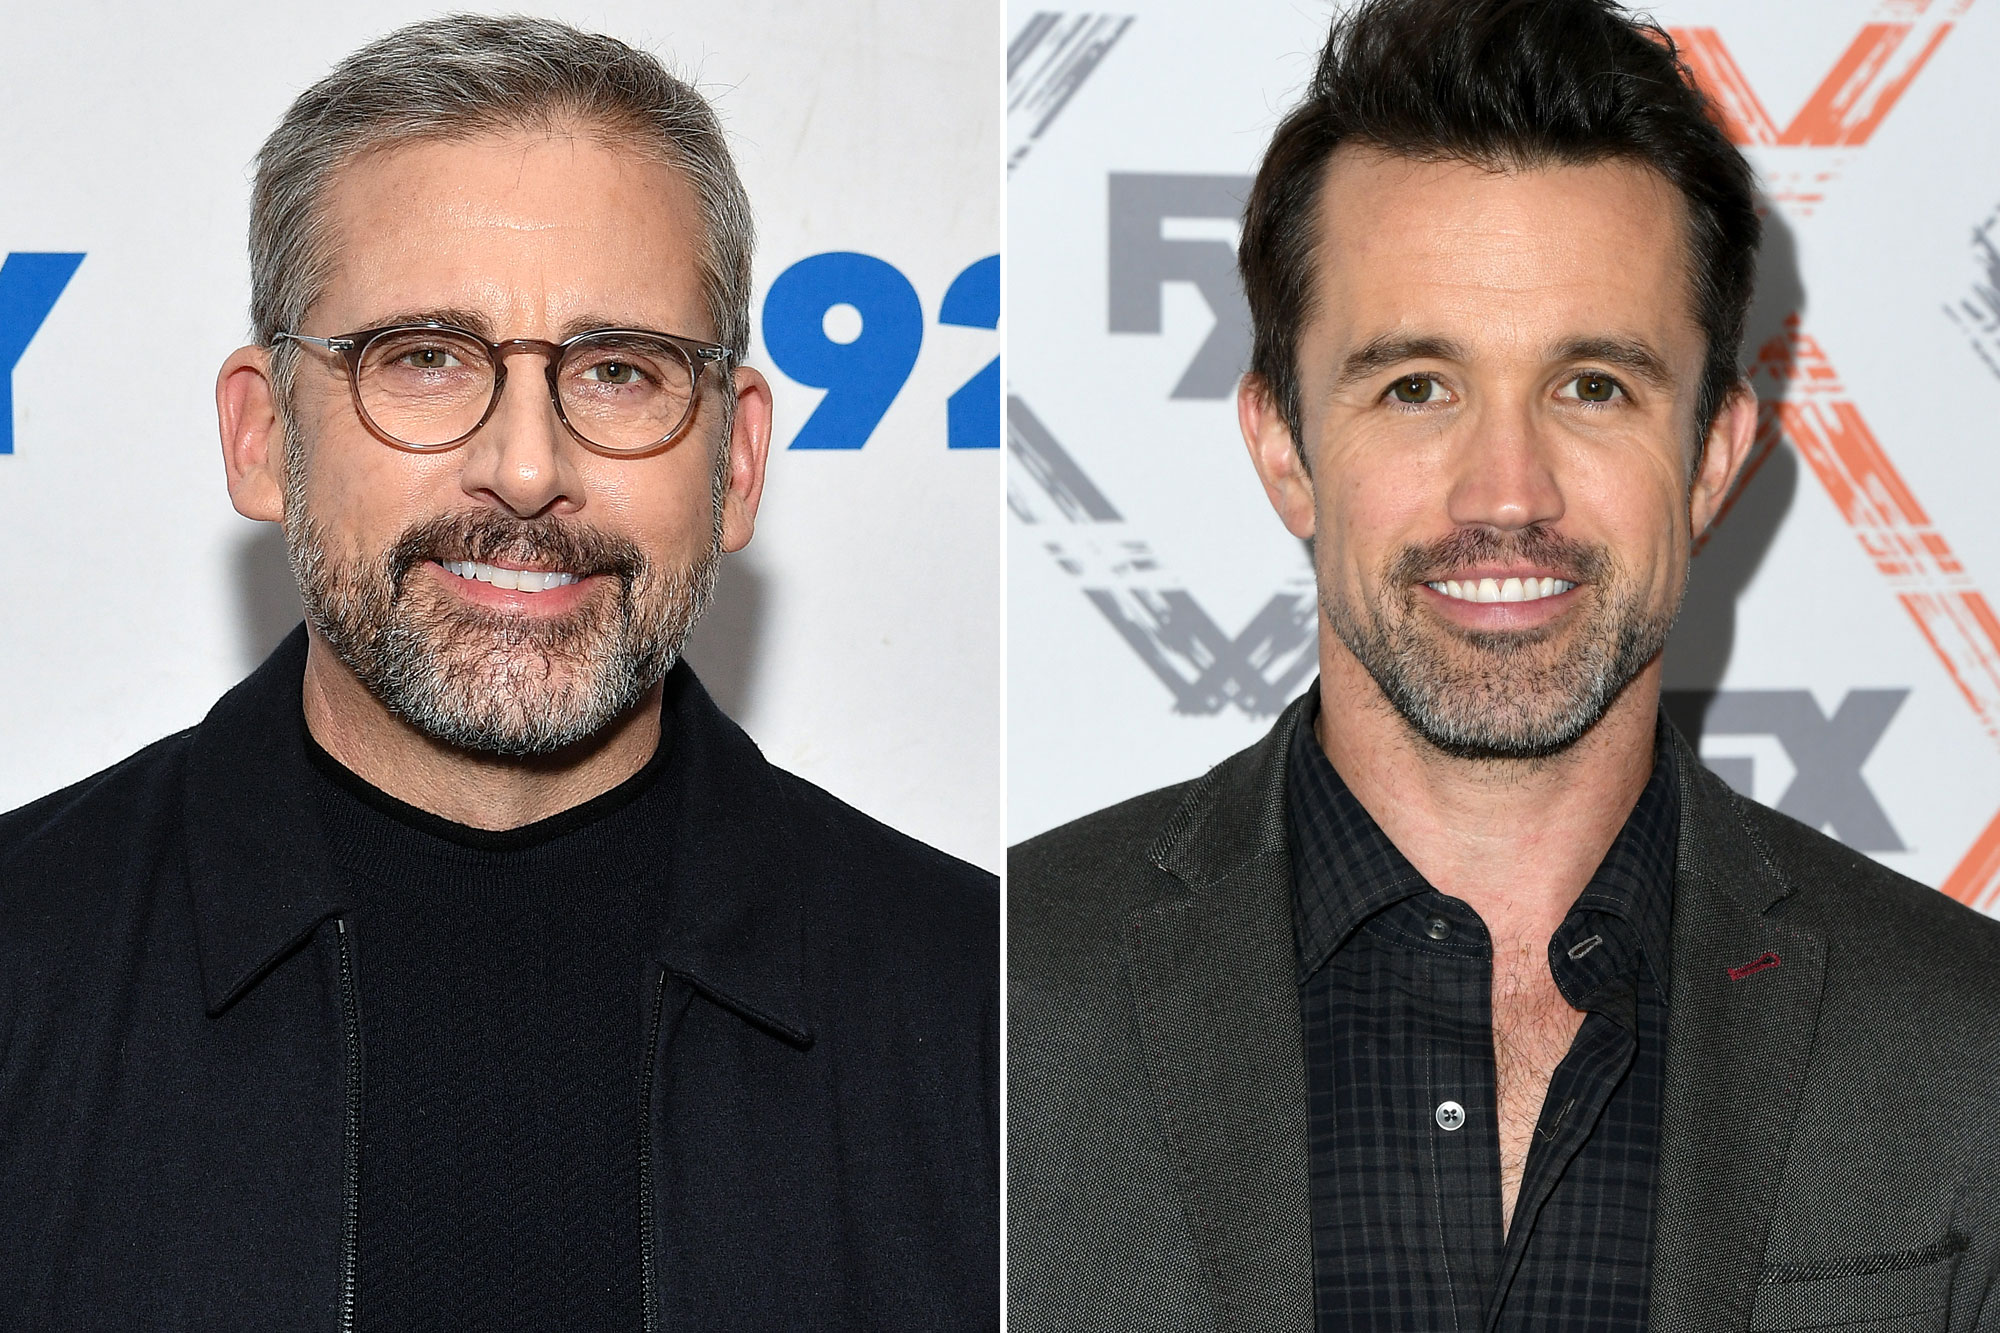 Steve Carell and Rob McElhenney